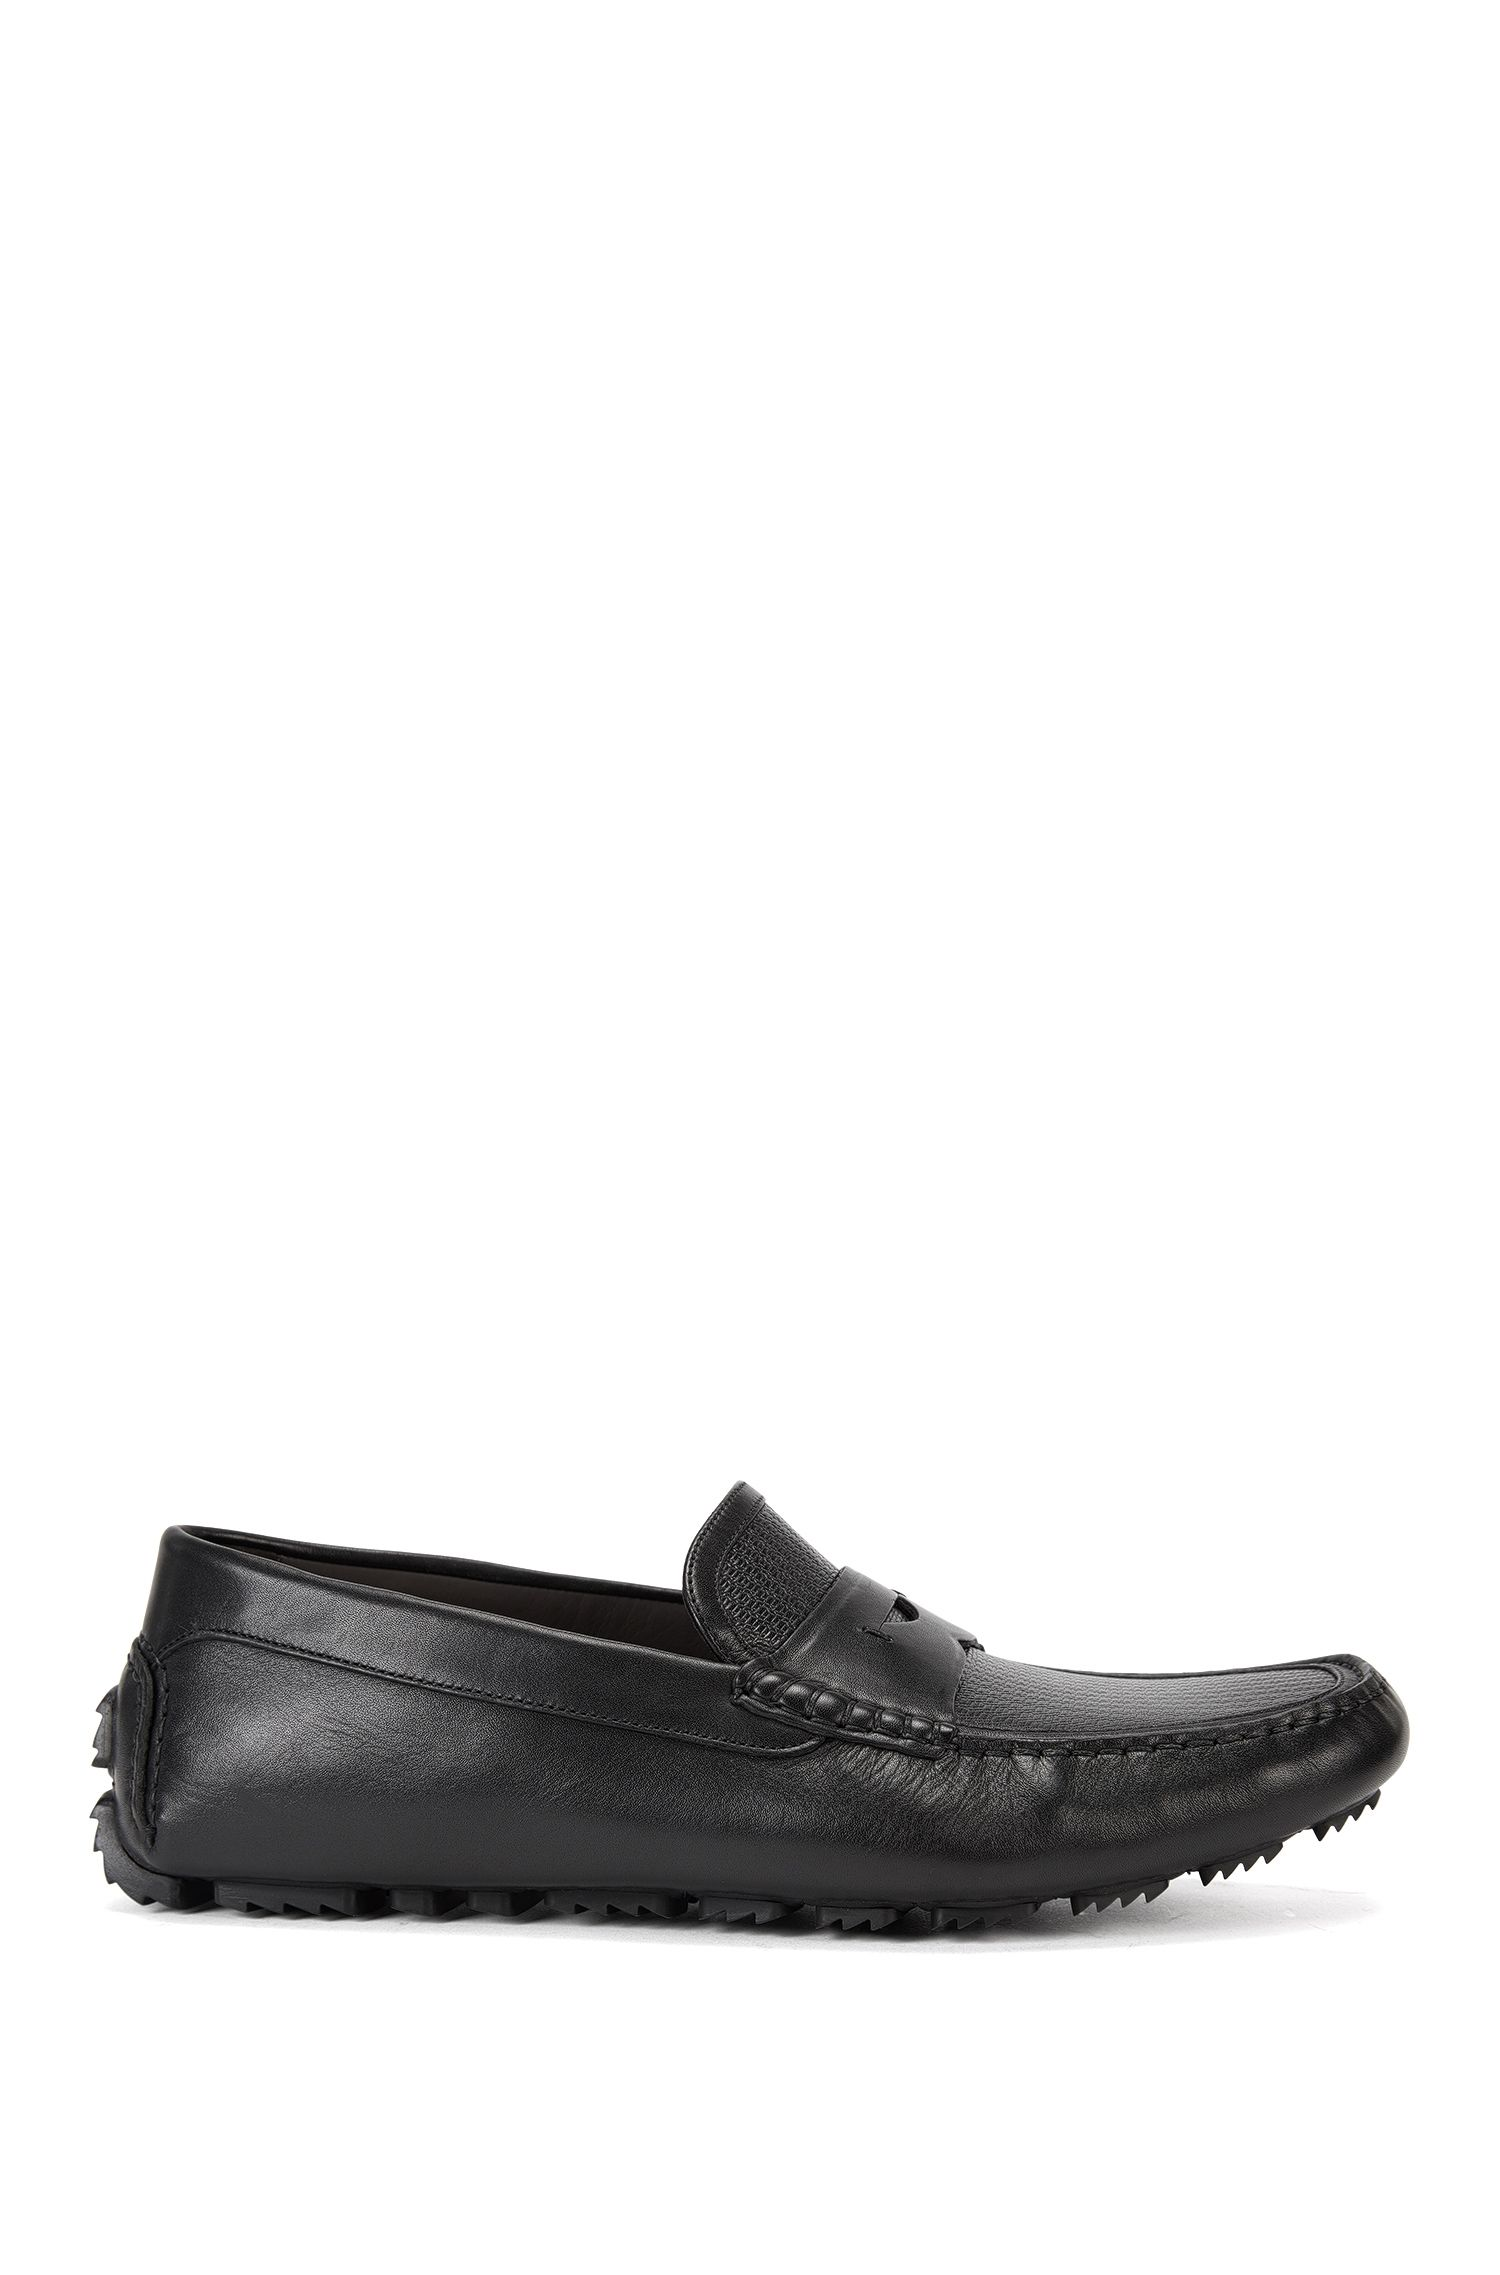 Leather driver shoes with moccasin detail